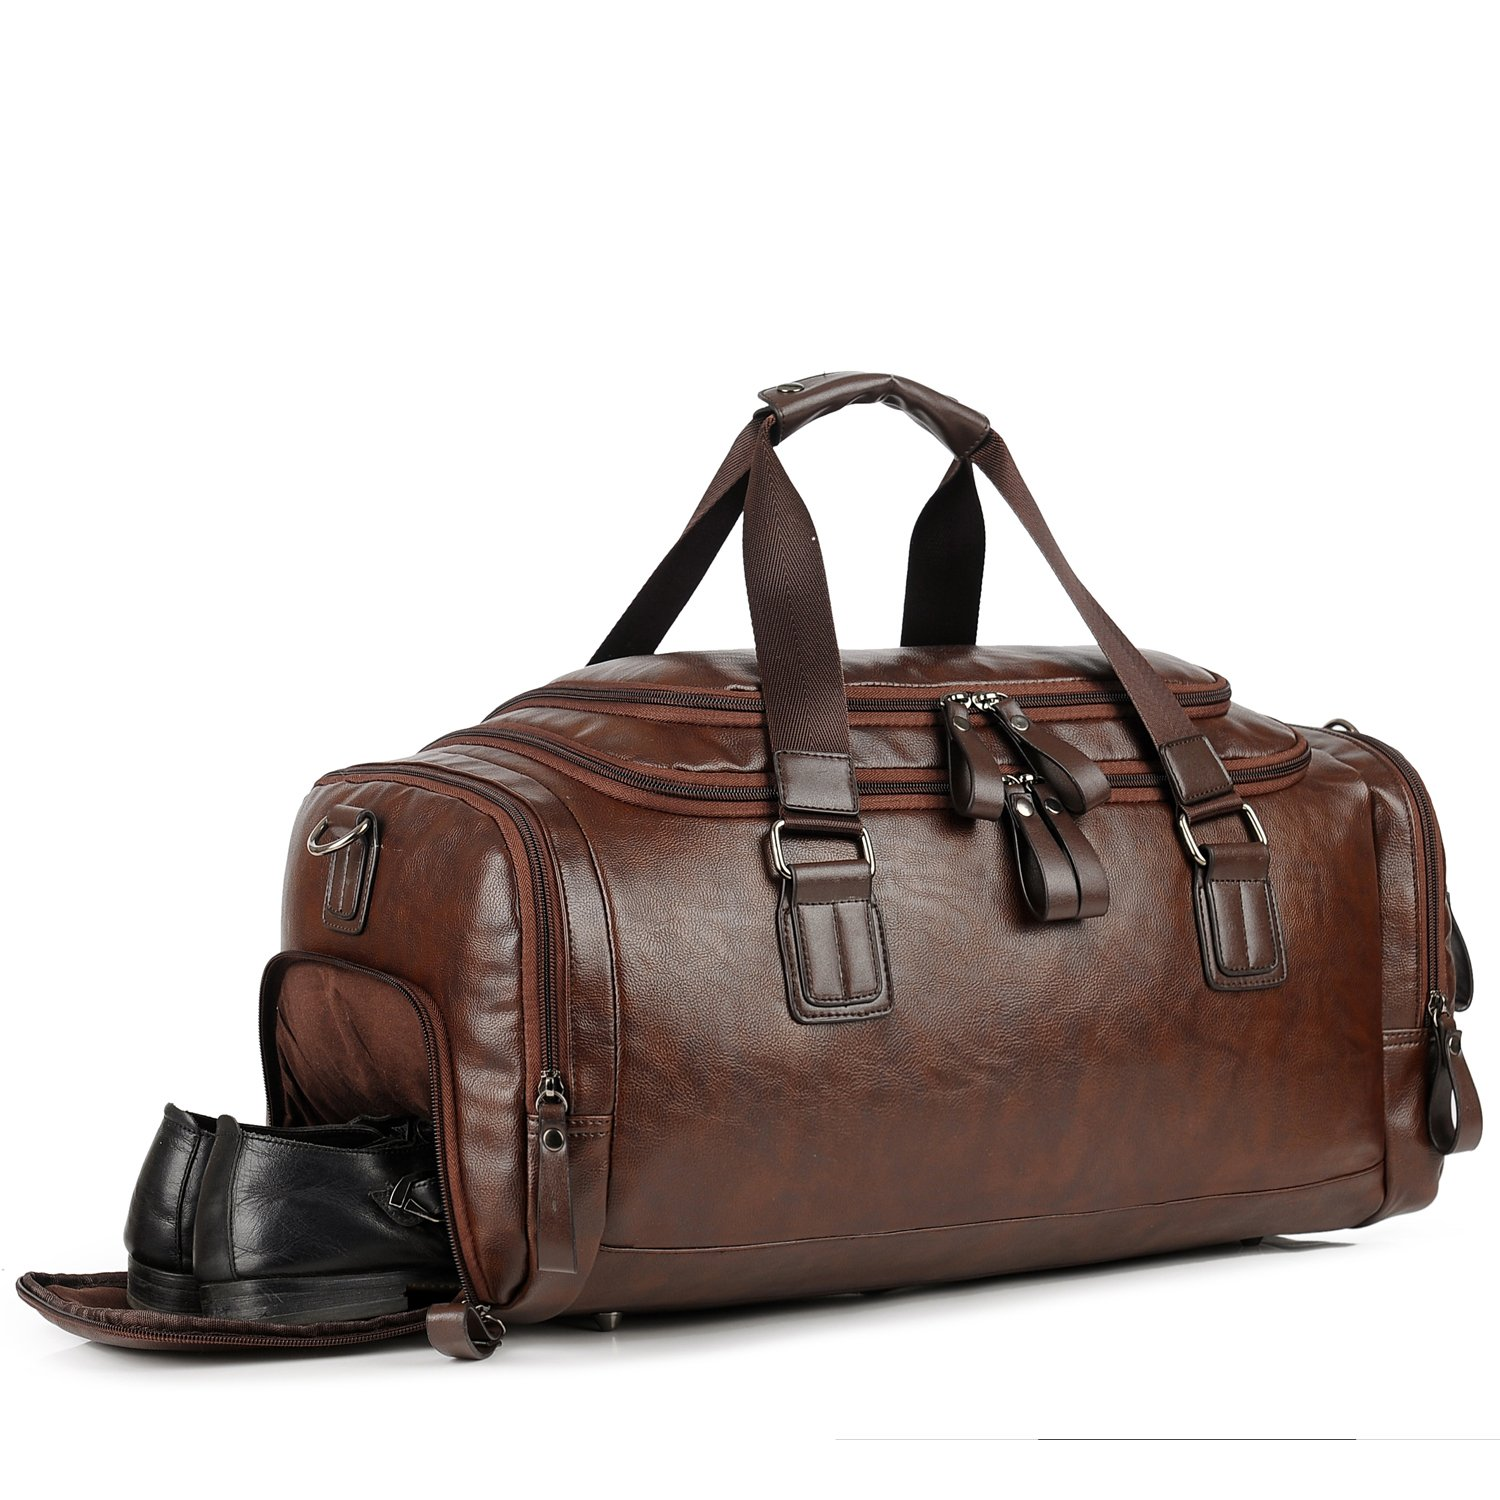 Men Gym Bag For Men Leather Travel Weekender Overnight Duffel Bag Sports (brown)